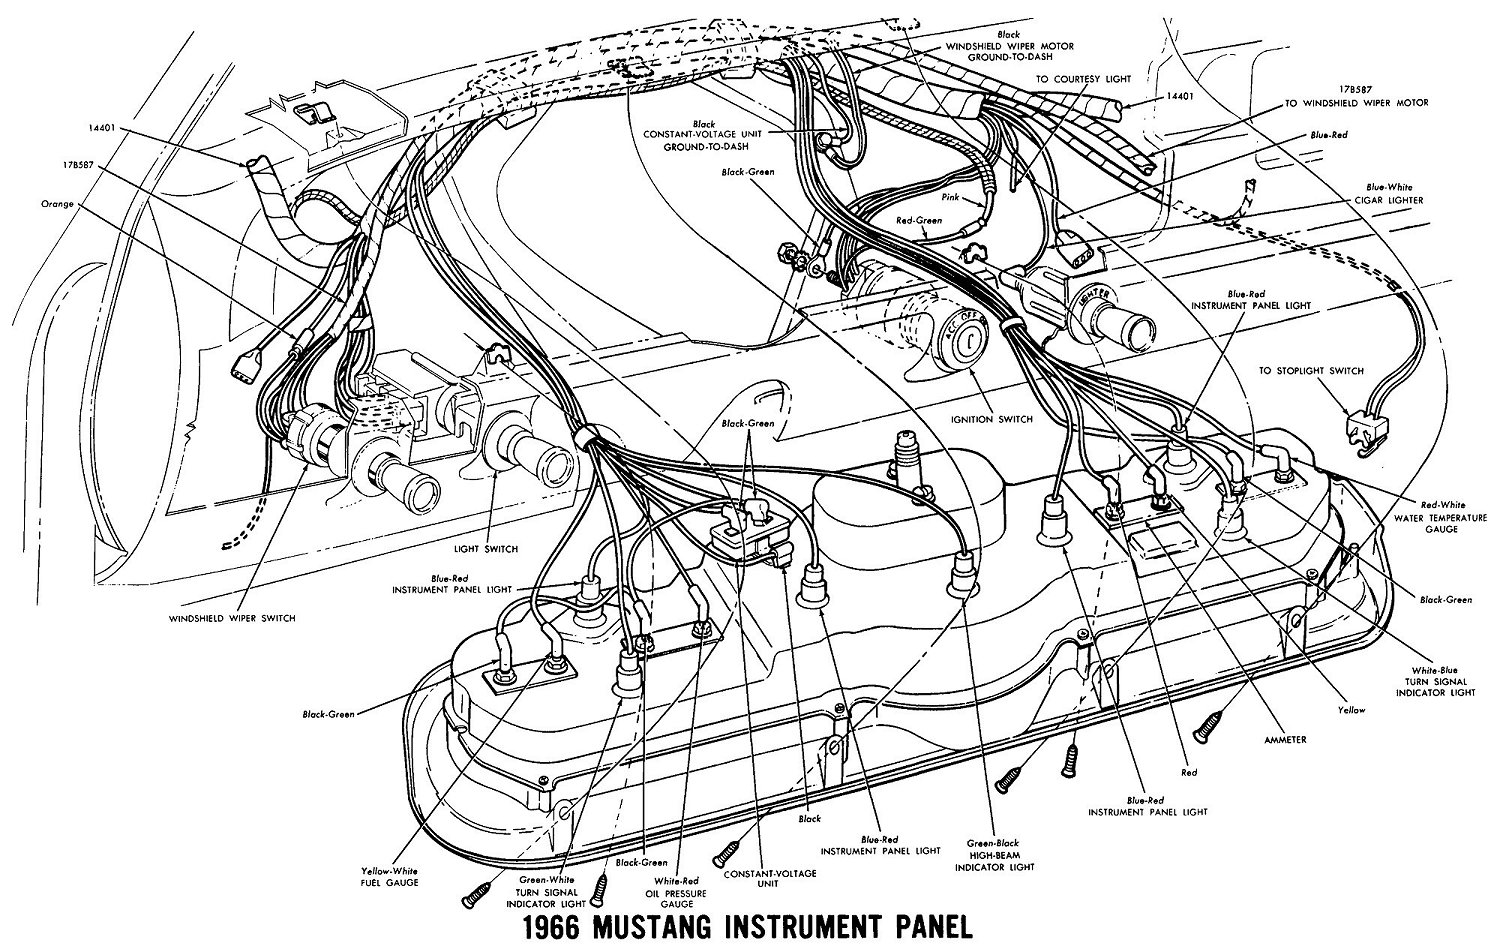 Tremendous 1966 Mustang Wiring Diagrams Average Joe Restoration Wiring Digital Resources Remcakbiperorg